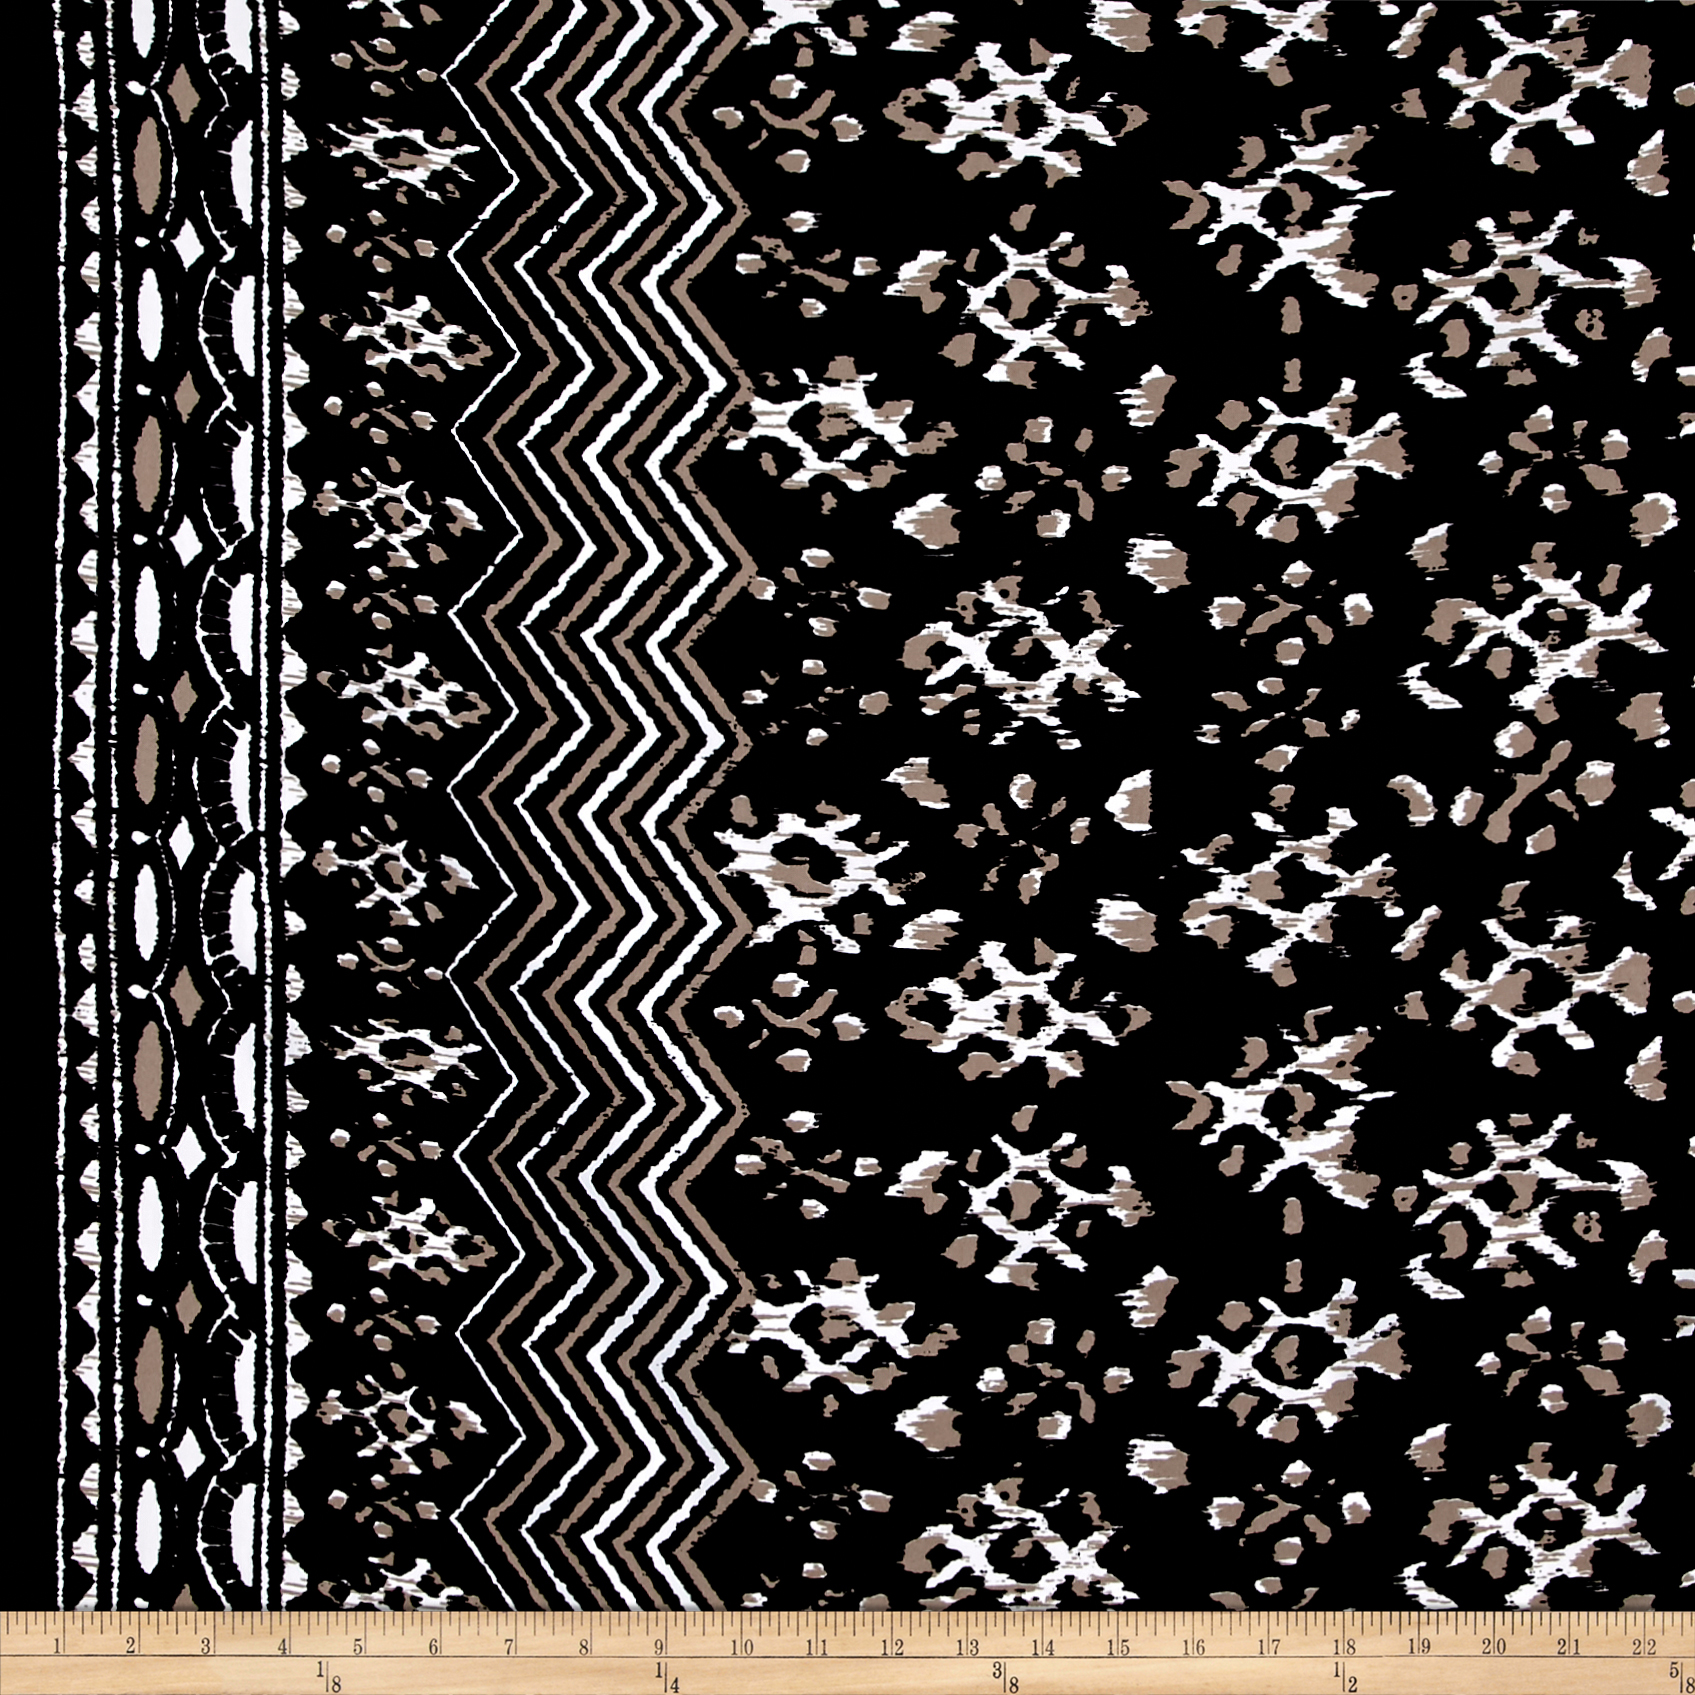 Peachskin Chevron Black/White Fabric